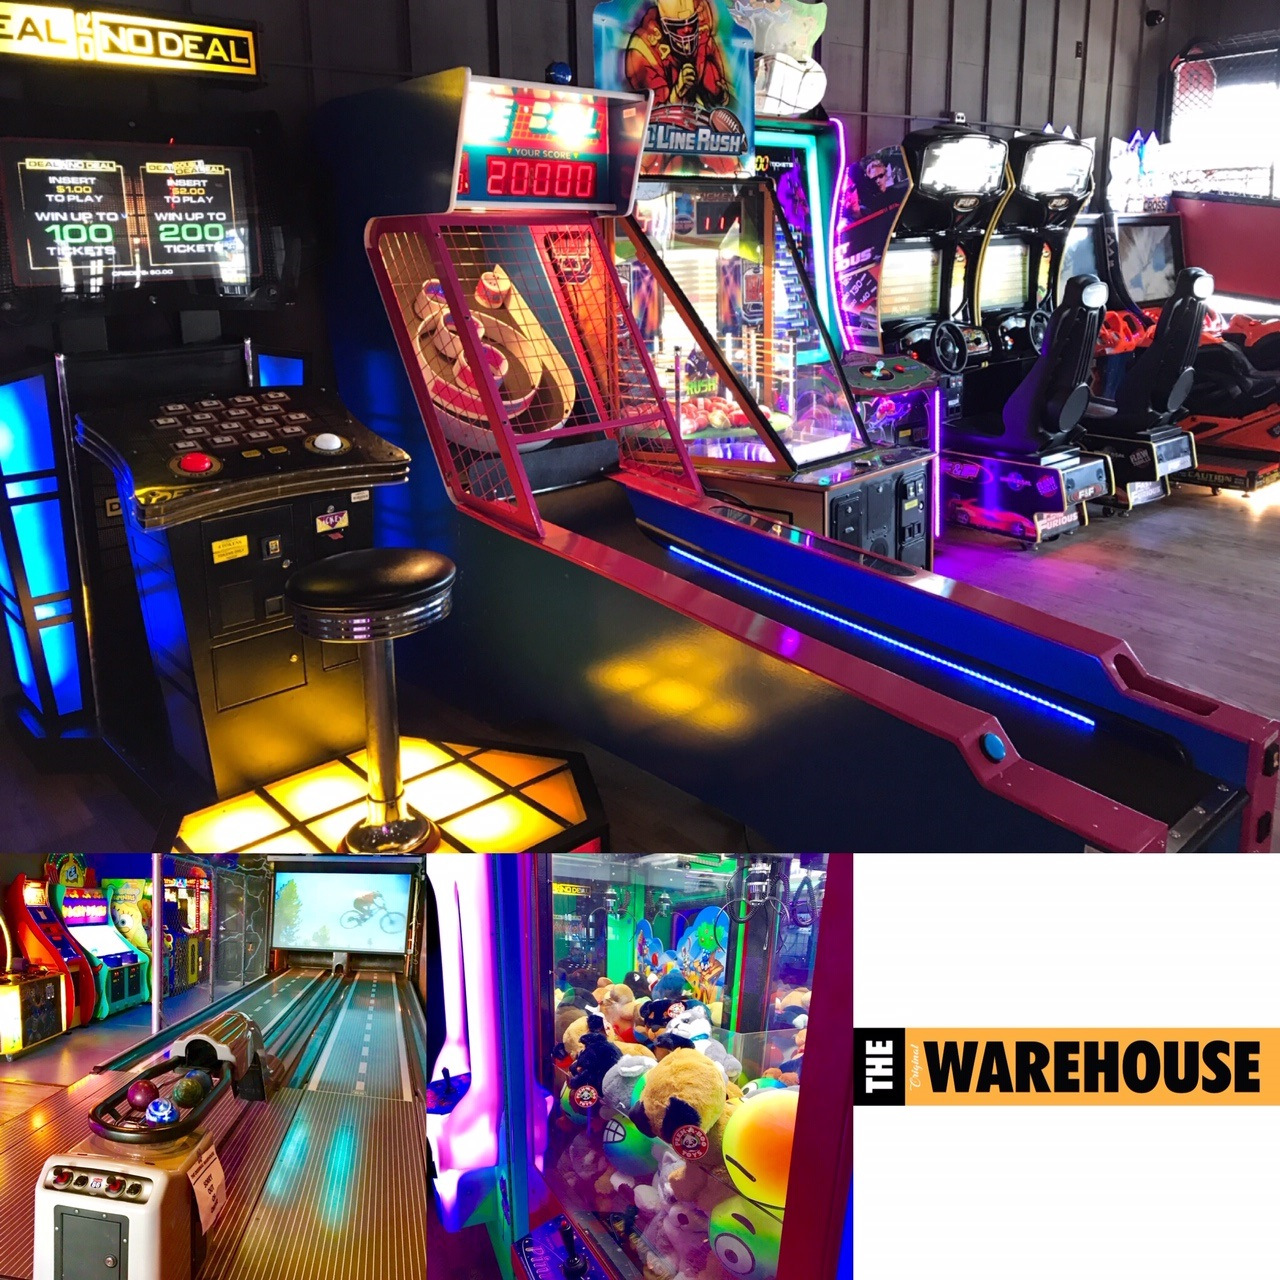 Bring your Family and Friends to come Play at our Video Game arcade with prize redemption machine and he Southtown's only Mini-Bowling Alley that is fun for all ages !